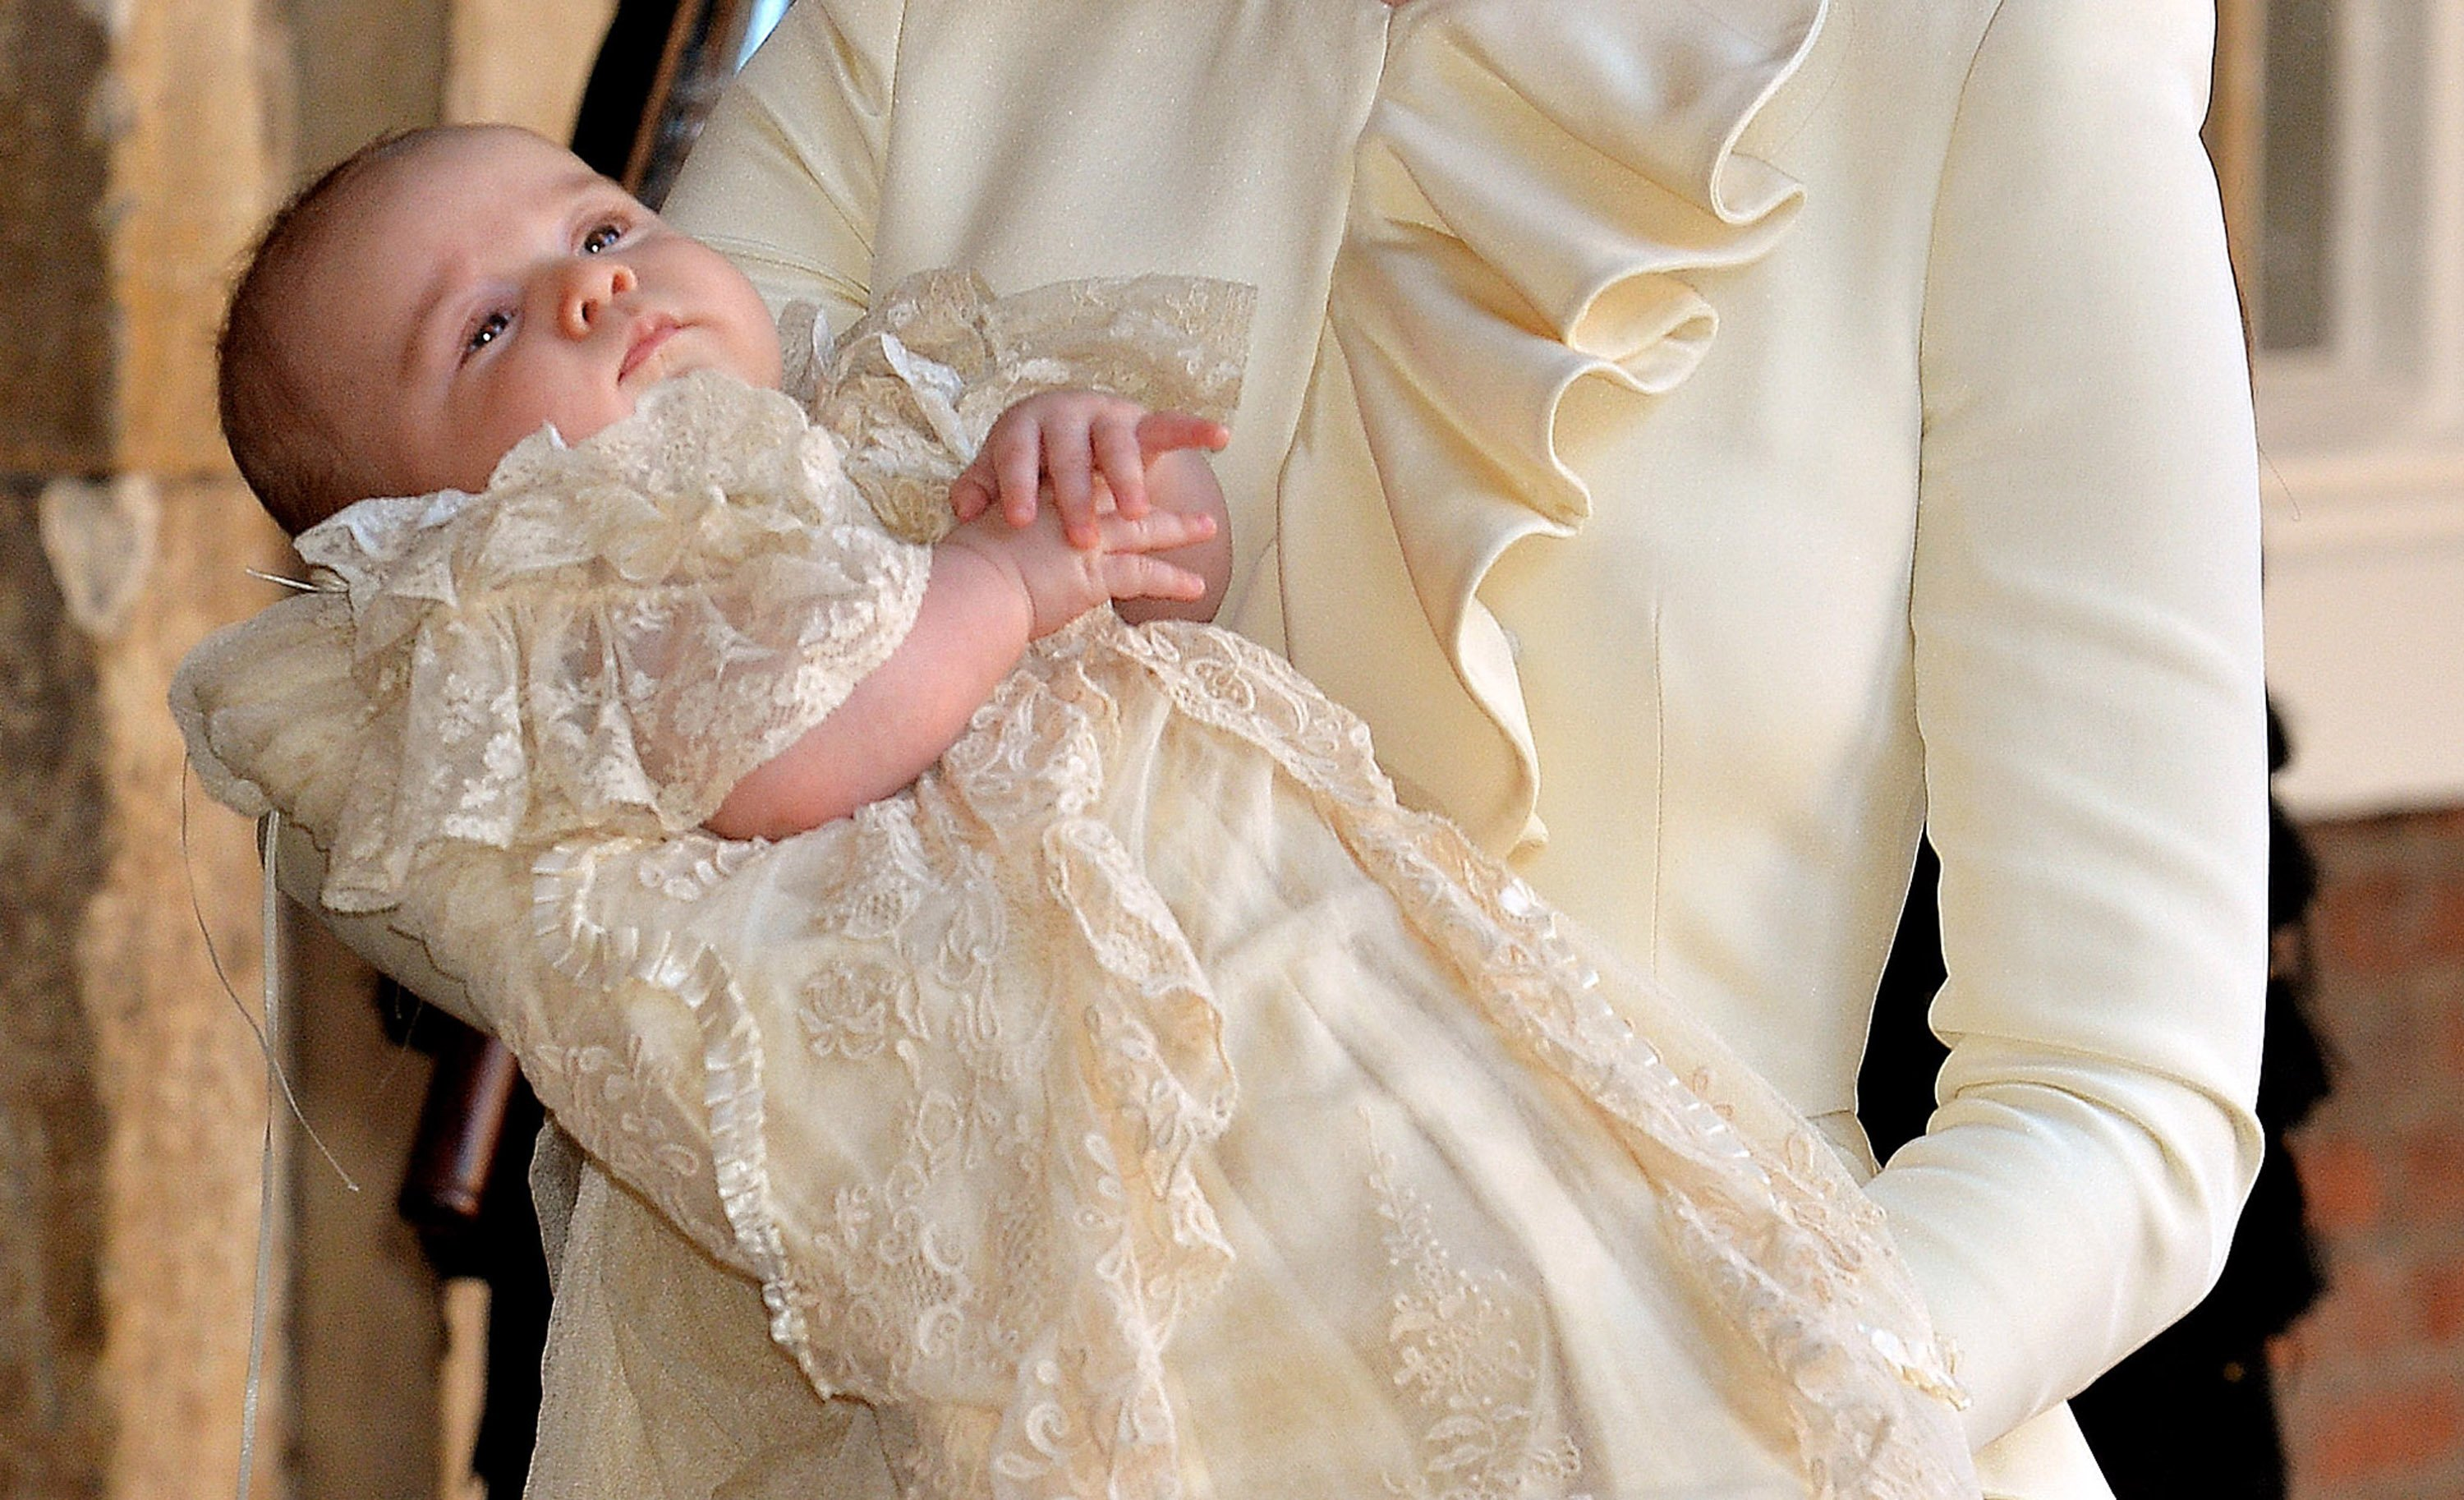 Catherine, Duchess of Cambridge carries her son Prince George Of Cambridge after his christening on October 23, 2013 in London, England.   Photo: Getty Images